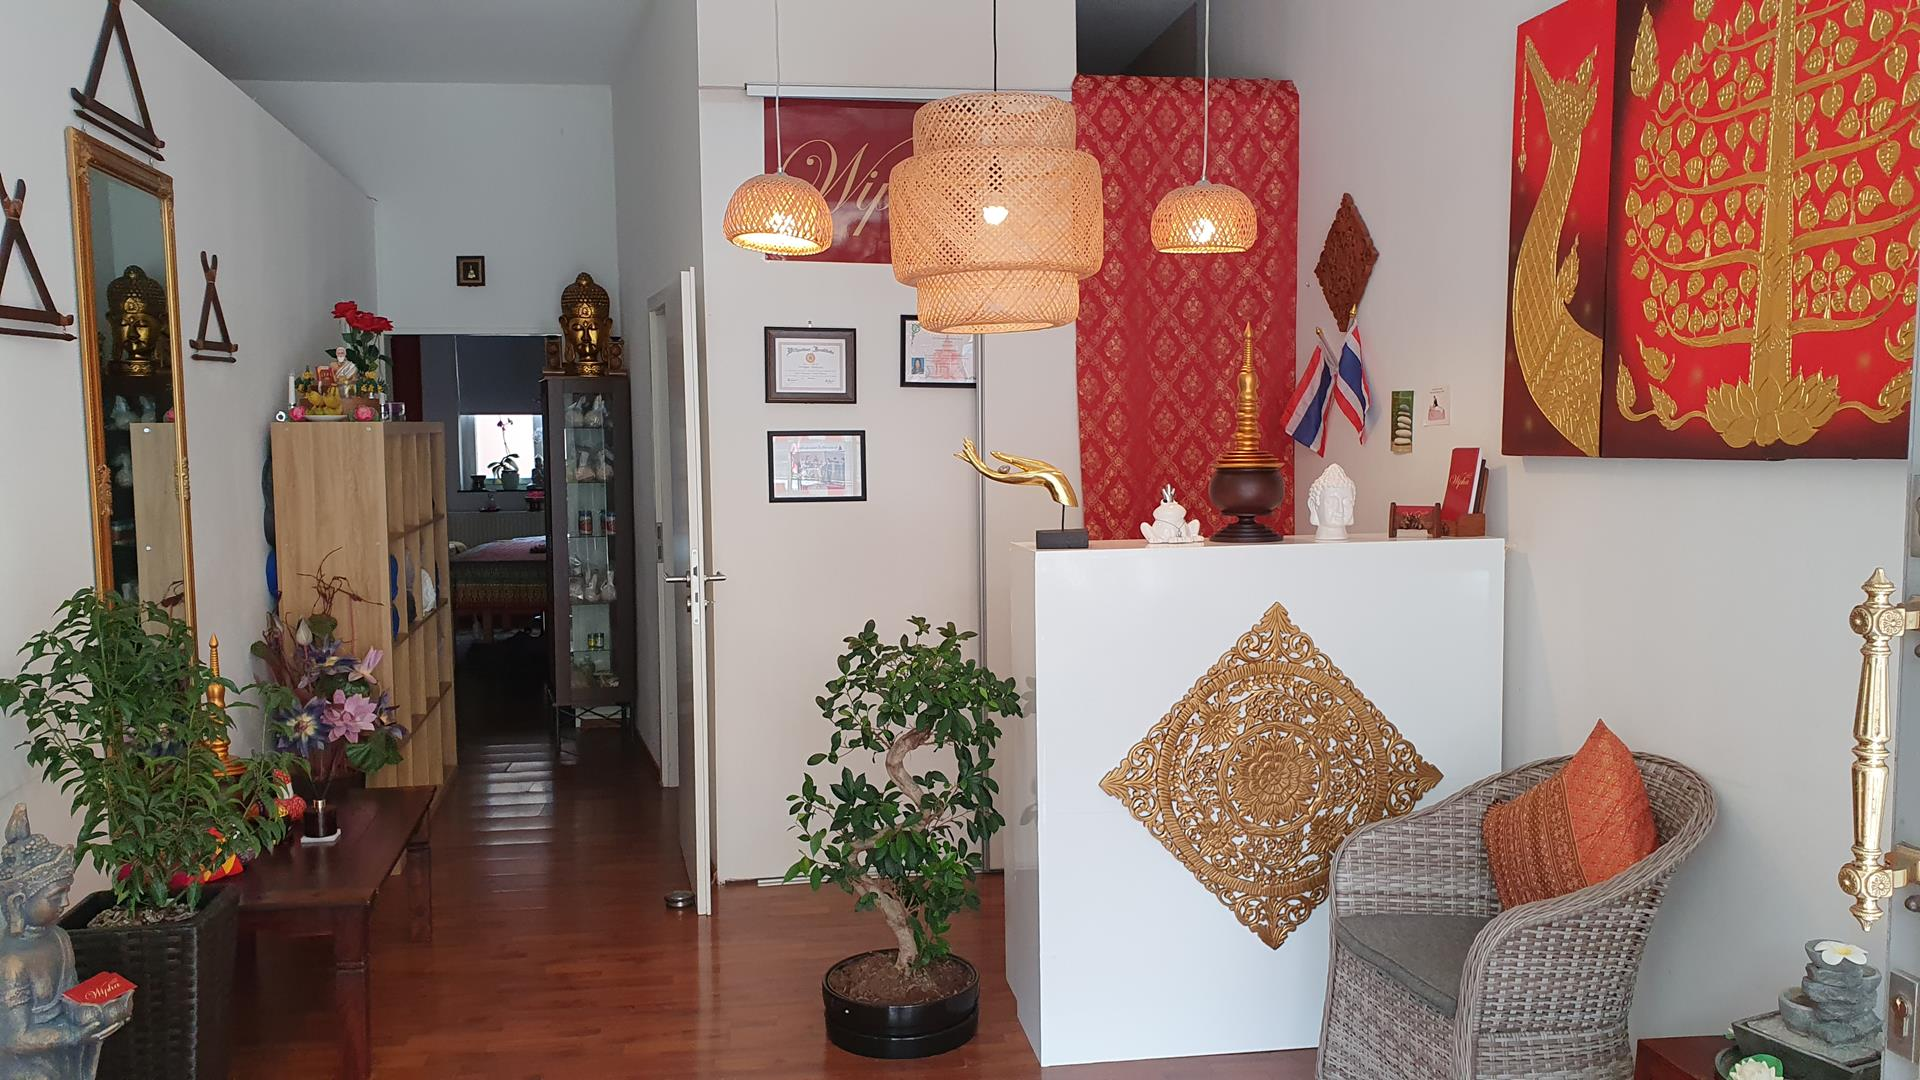 Wipha Thai Massage Studio, Empfang